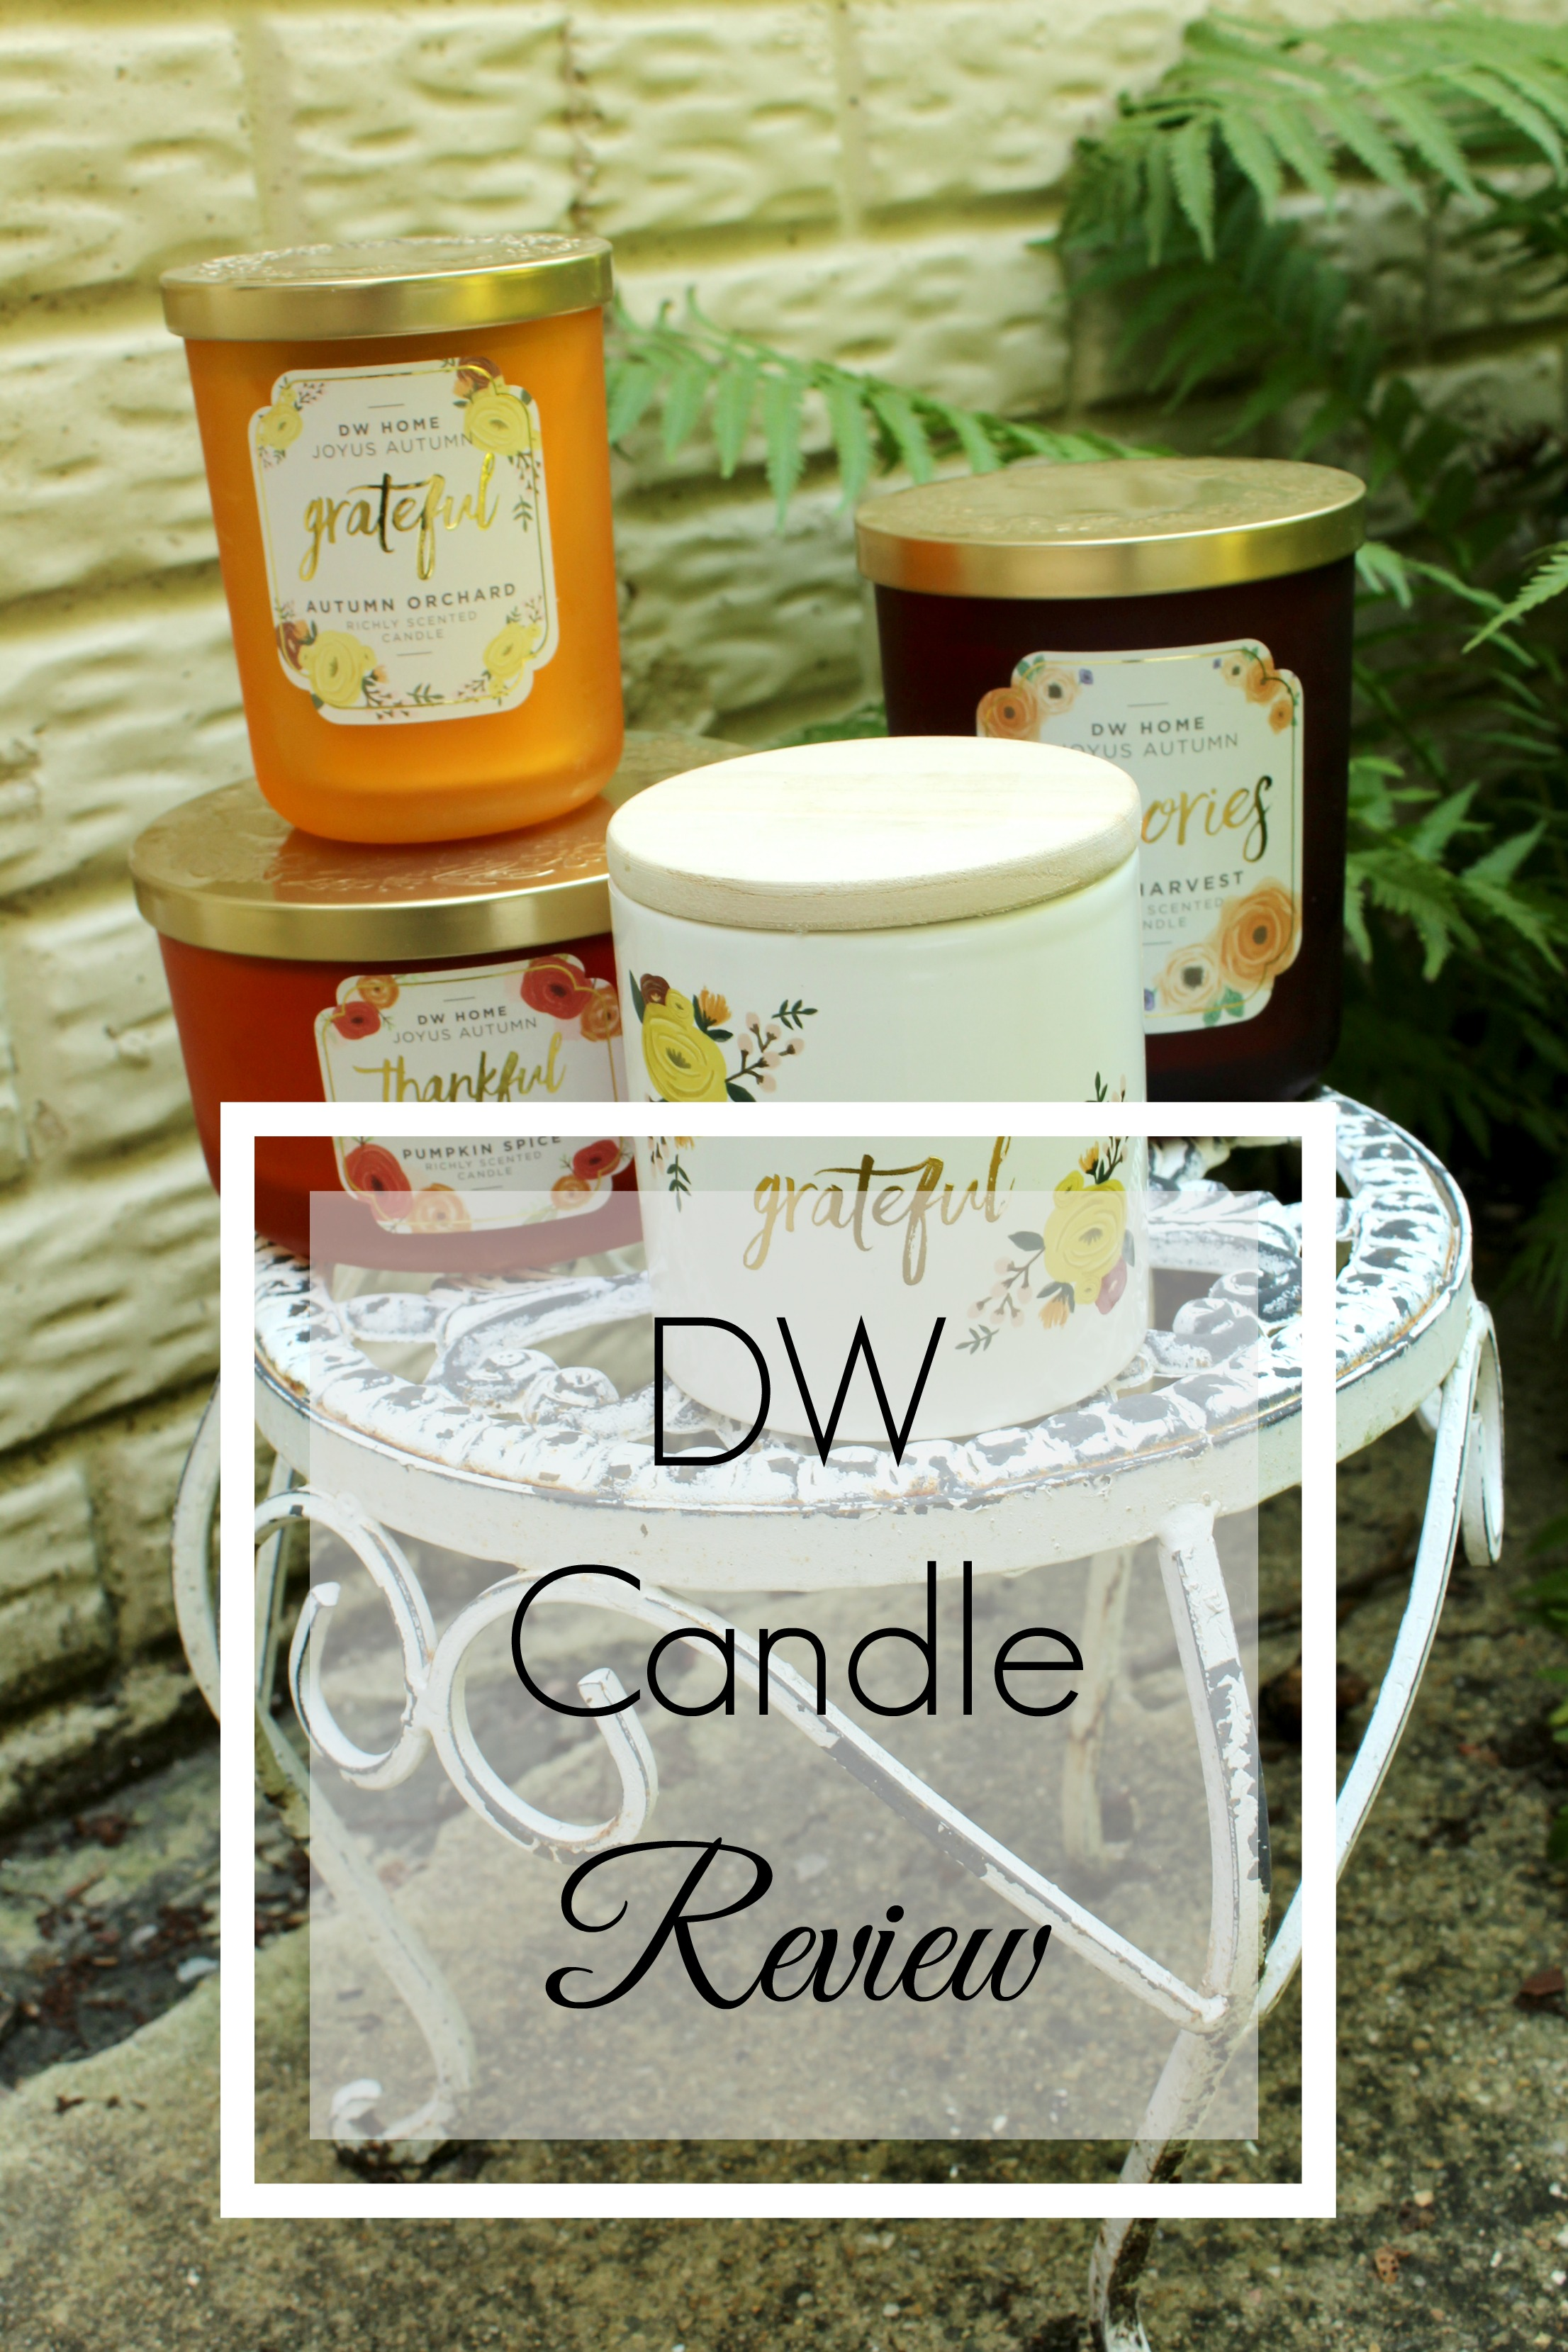 DW Candle Review – Brandie Sellers